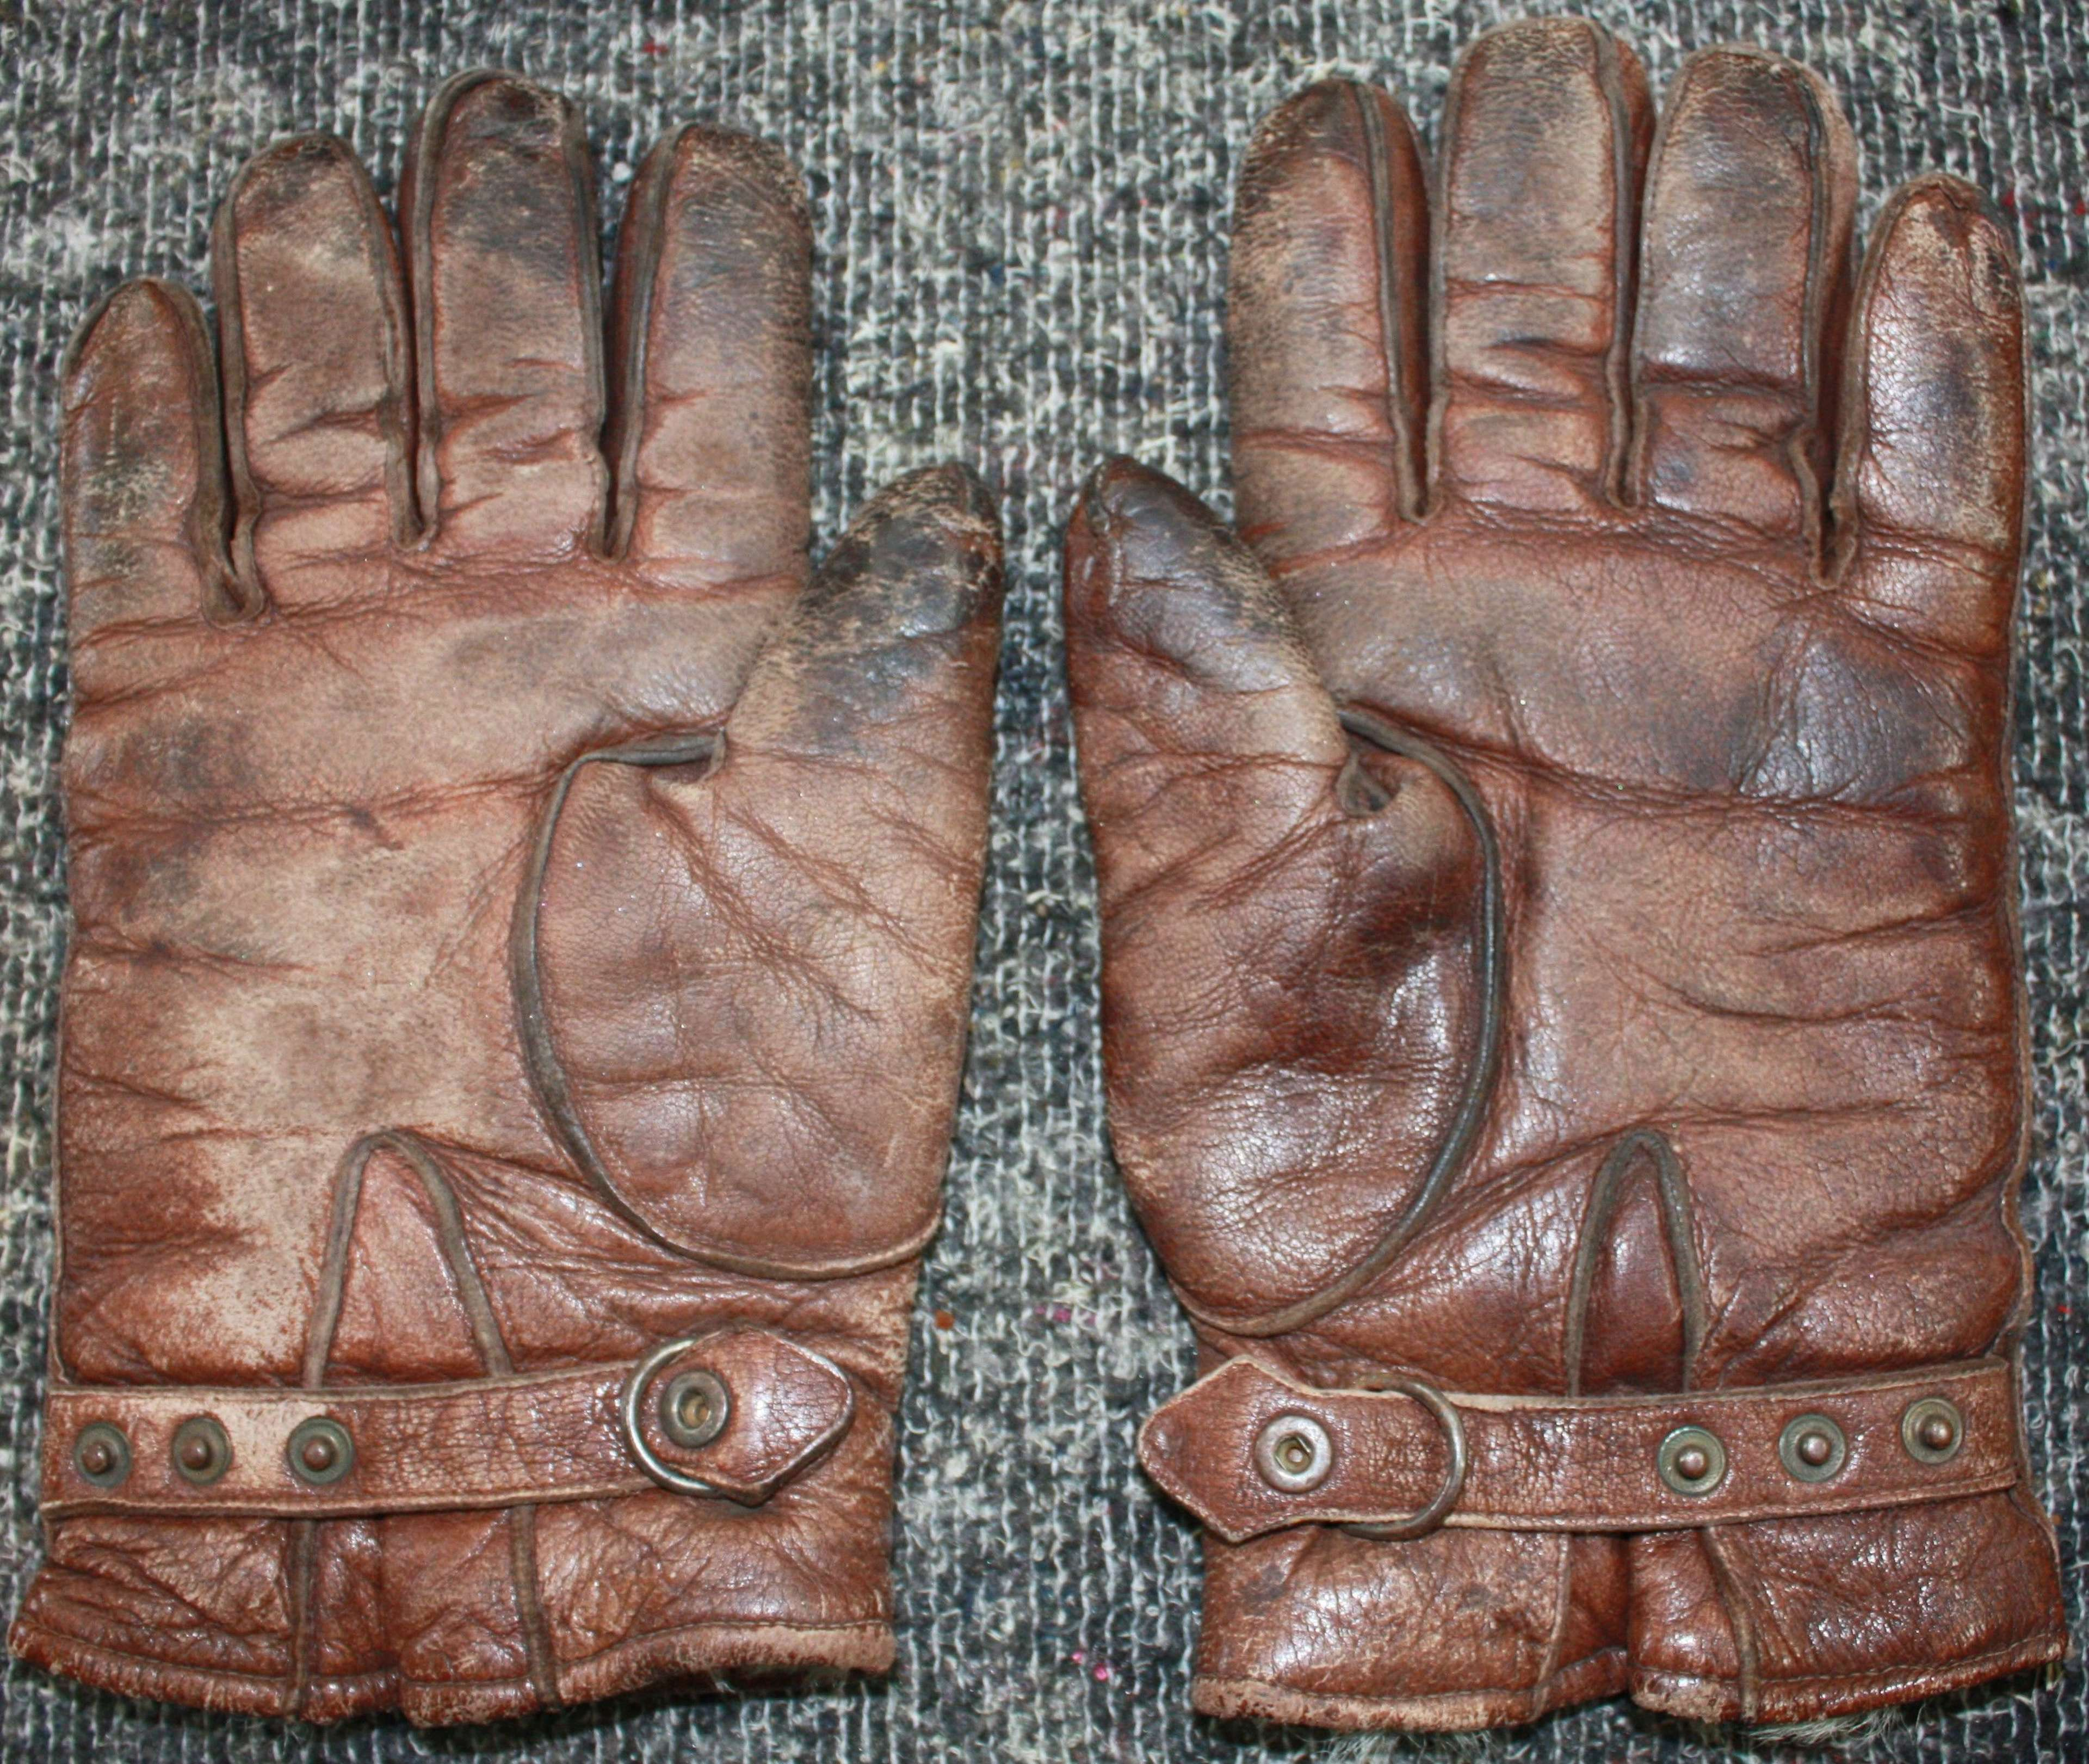 1942 DATED GERMAN PILOTS GLOVES size 9 1/2